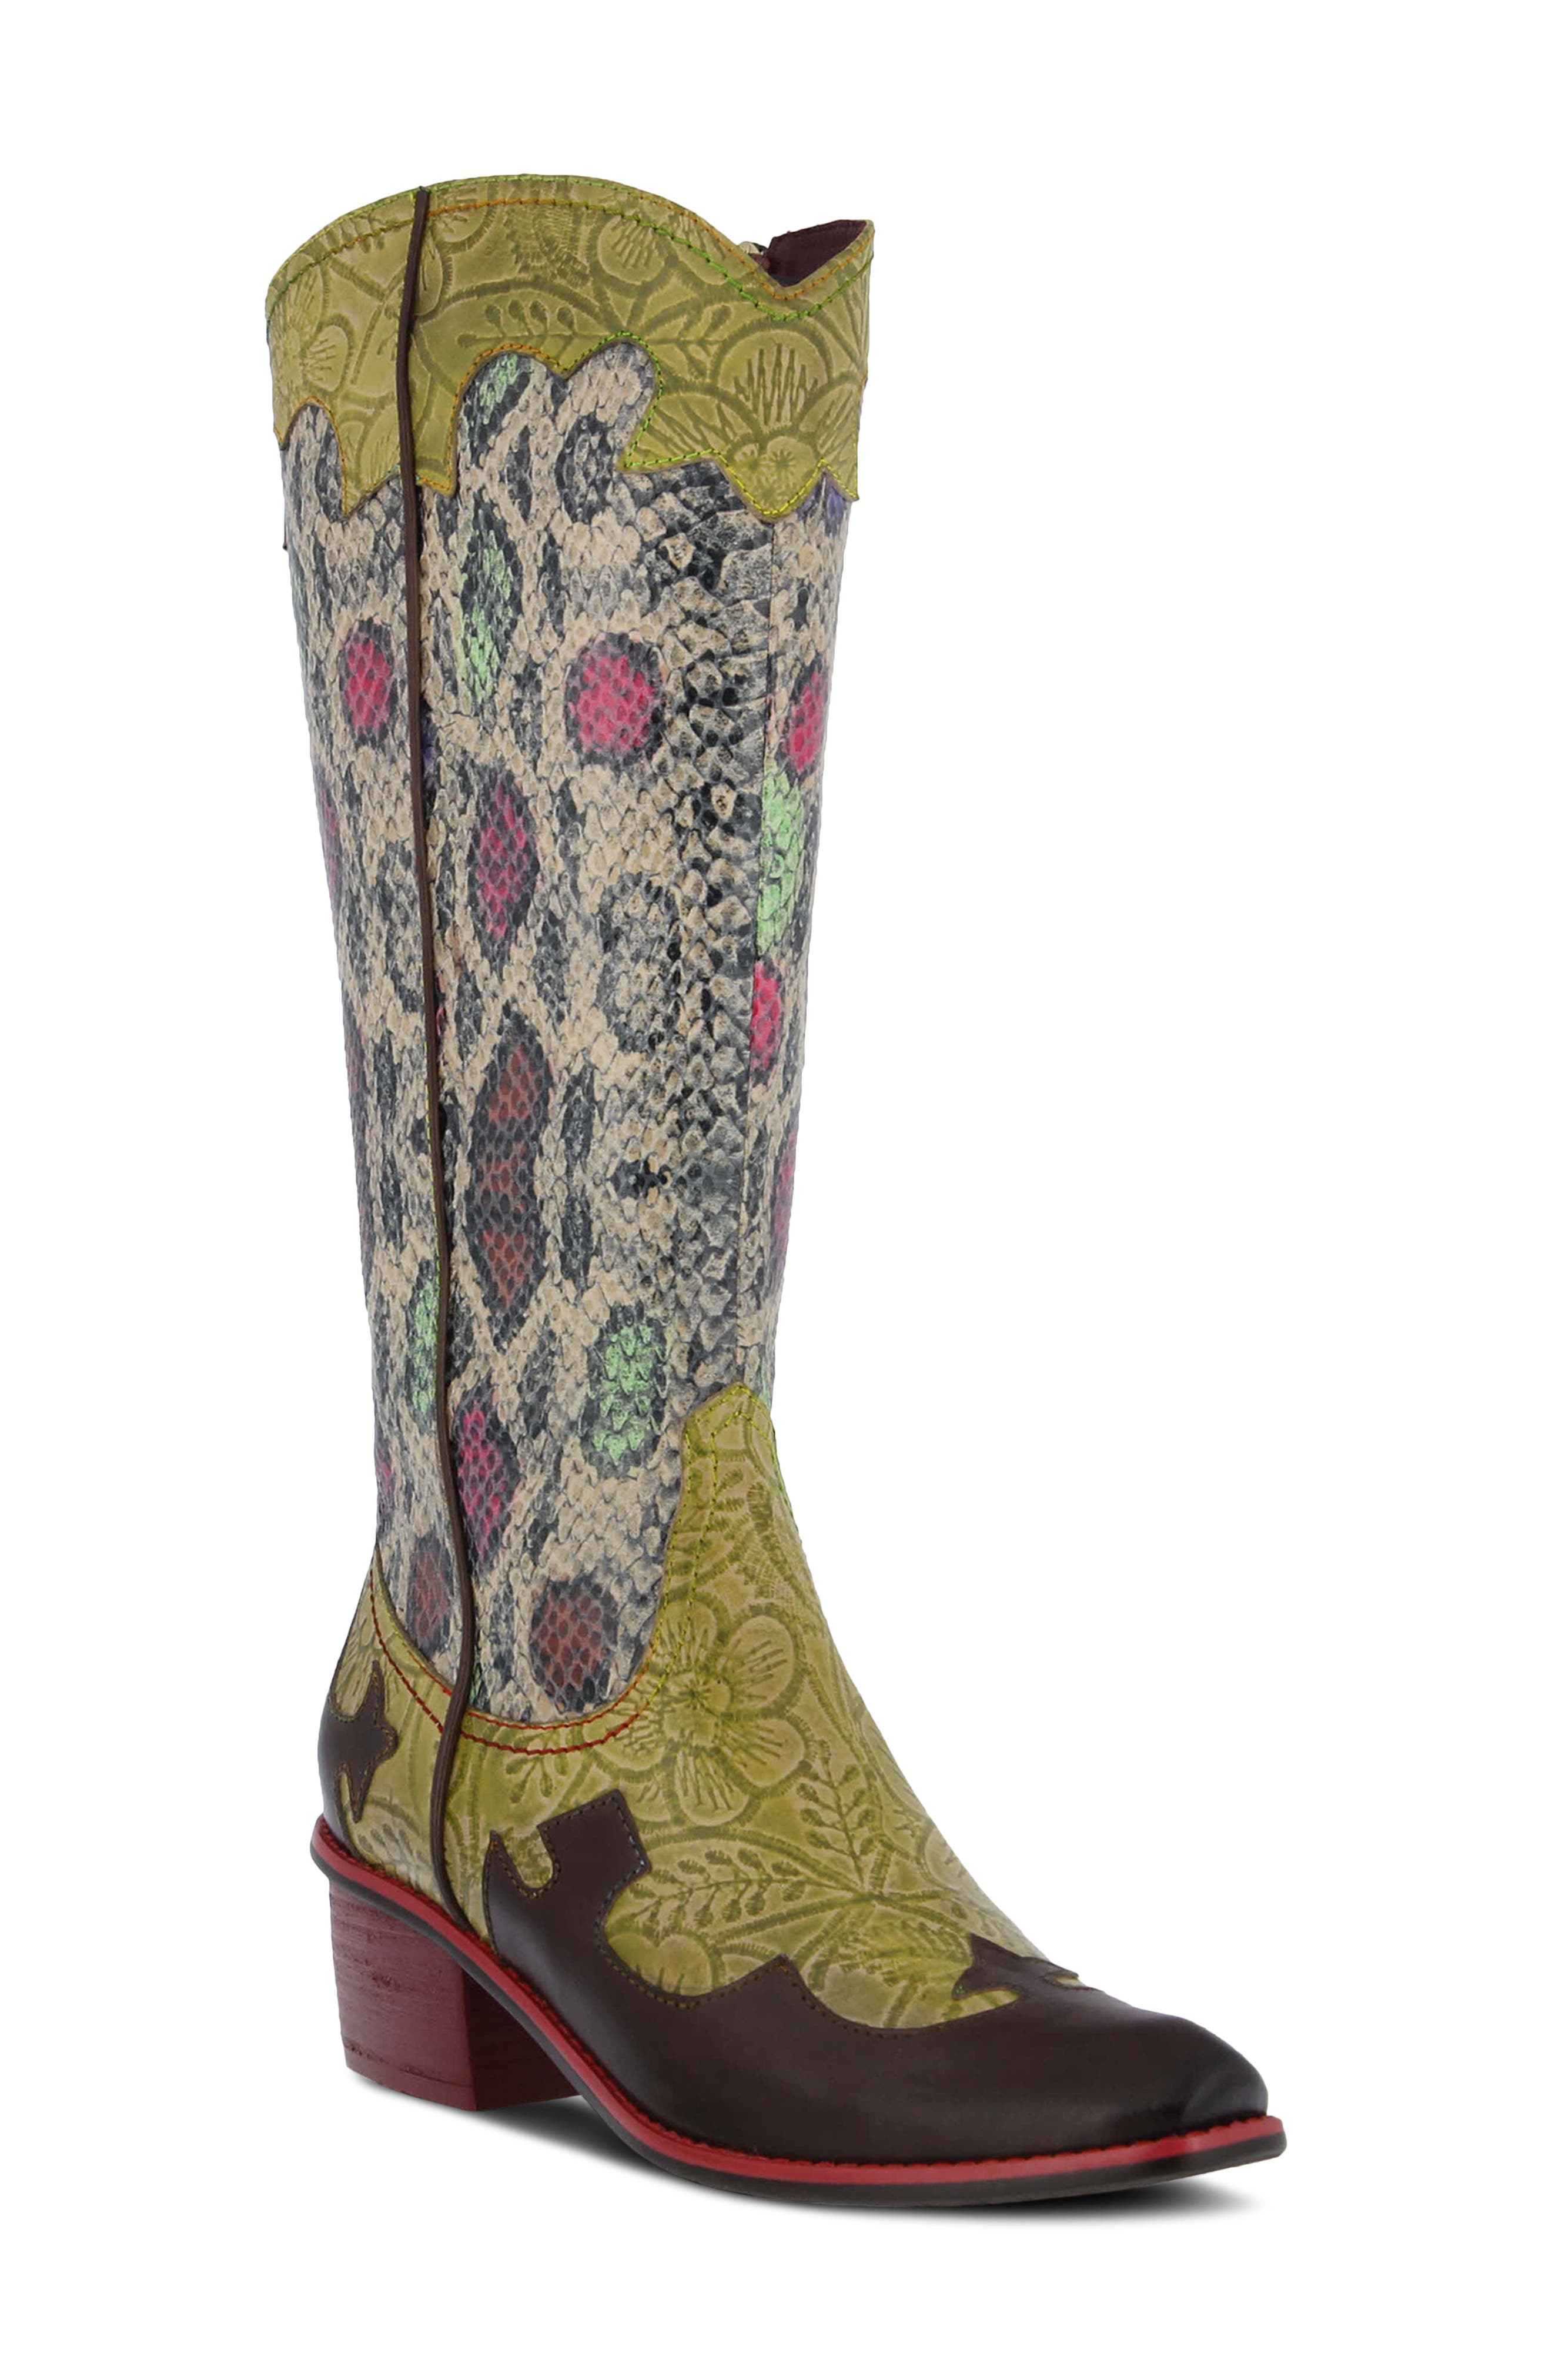 Rodeo Western Pointed Toe Mid Calf Boot